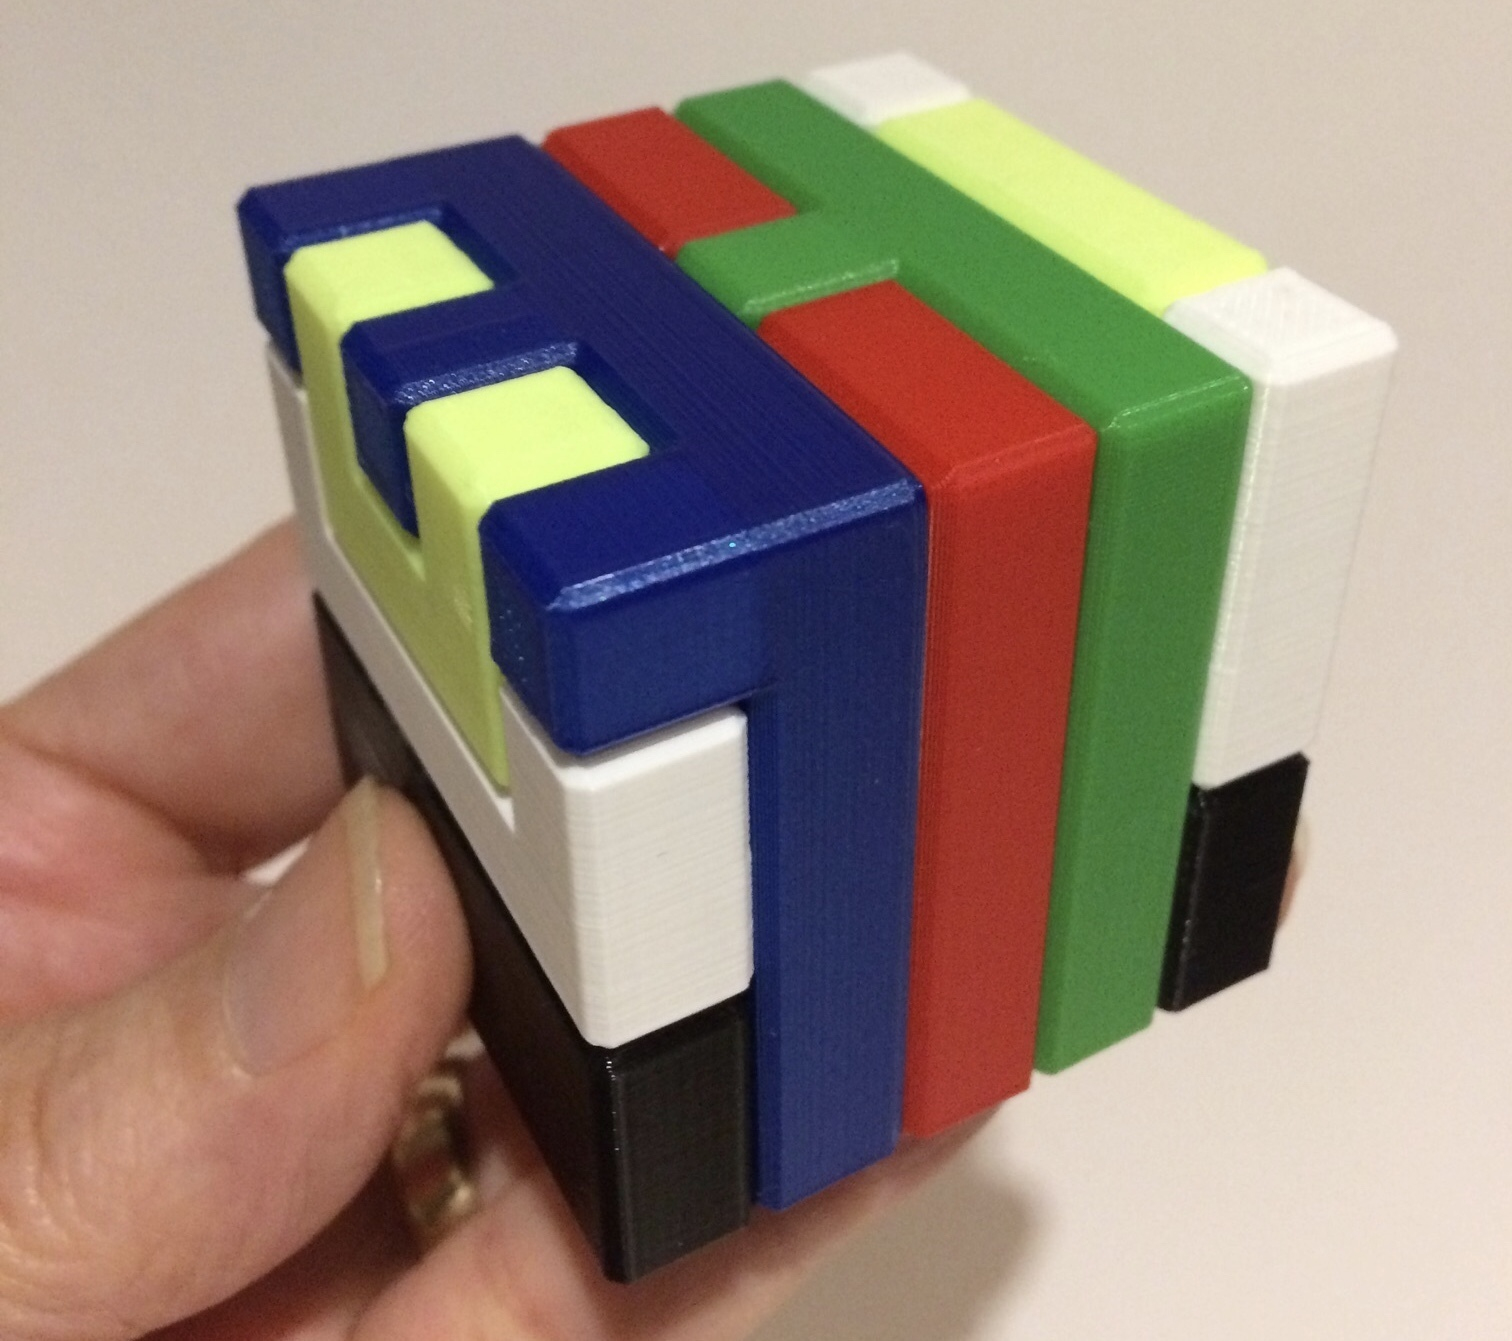 3D Printed Printable Interlocking Puzzle #4 - Level 11Richgain - Printable 3D Puzzles